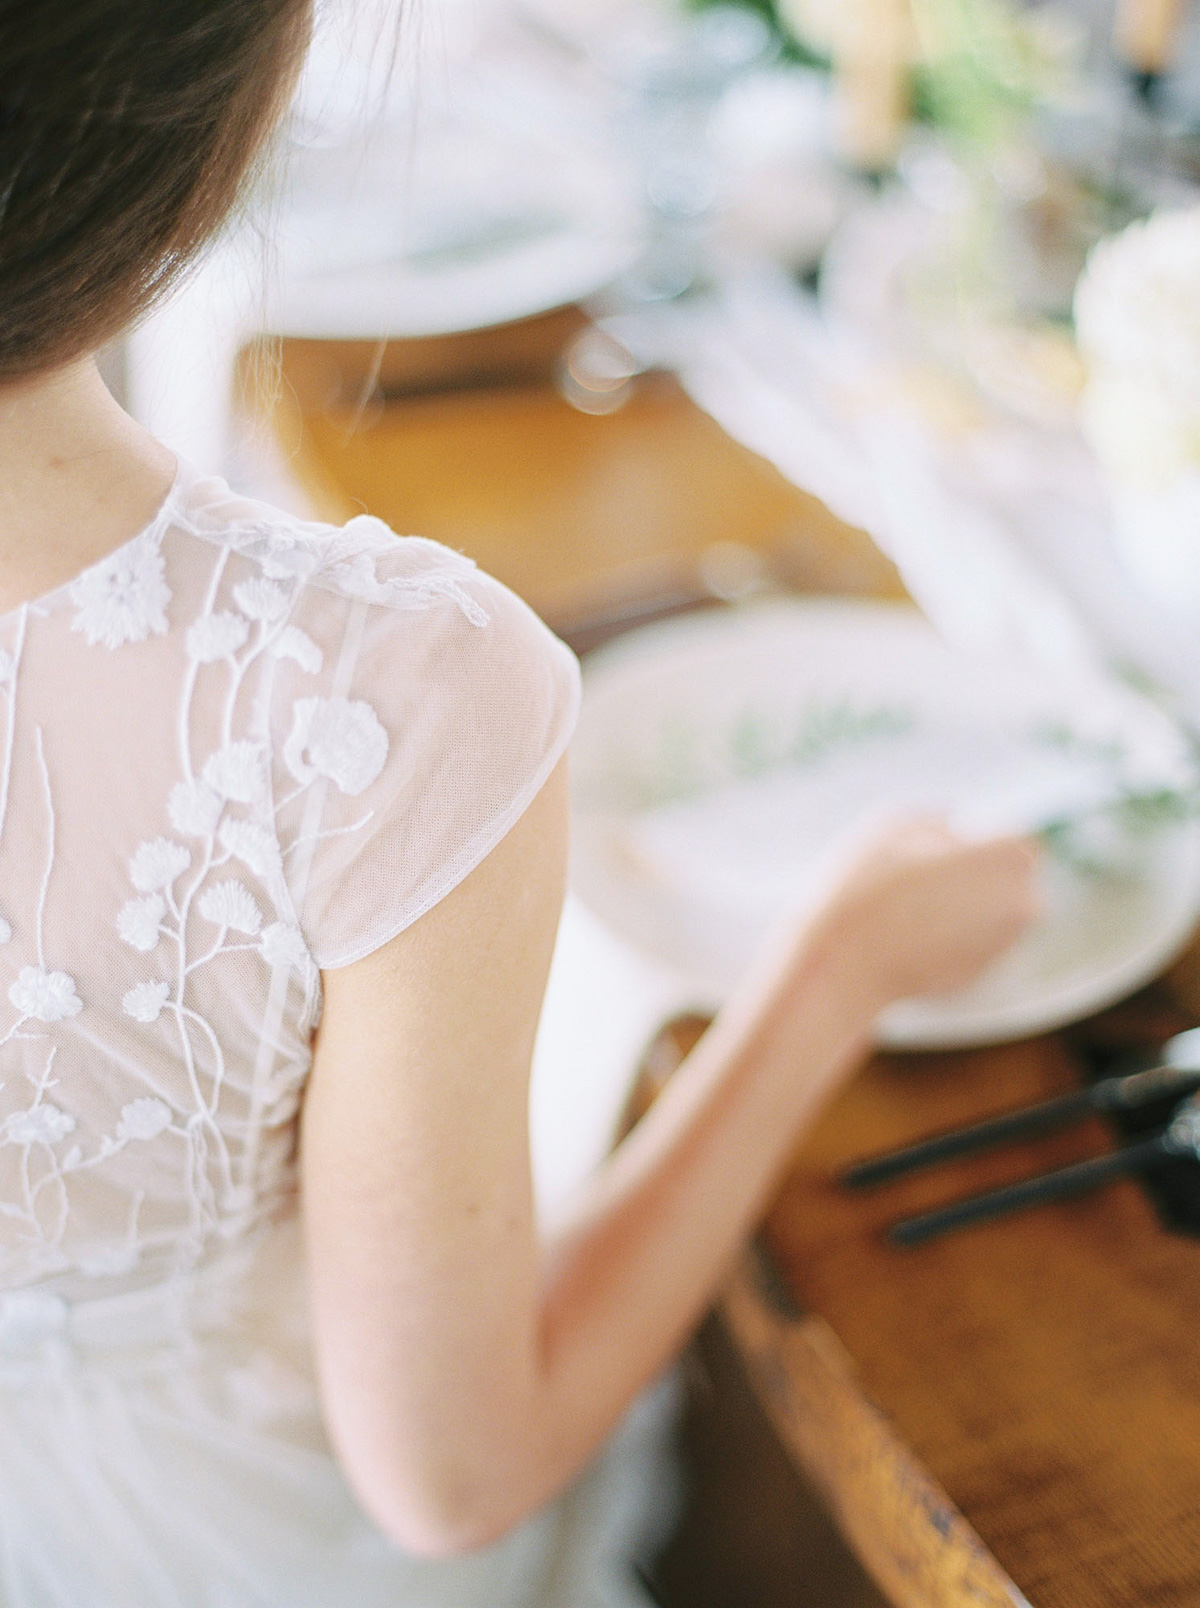 will-reid-photo-vineyard-bride-swish-list-kurtz-orchards-market-niagara-on-the-lake-wedding-editorial-17.jpg